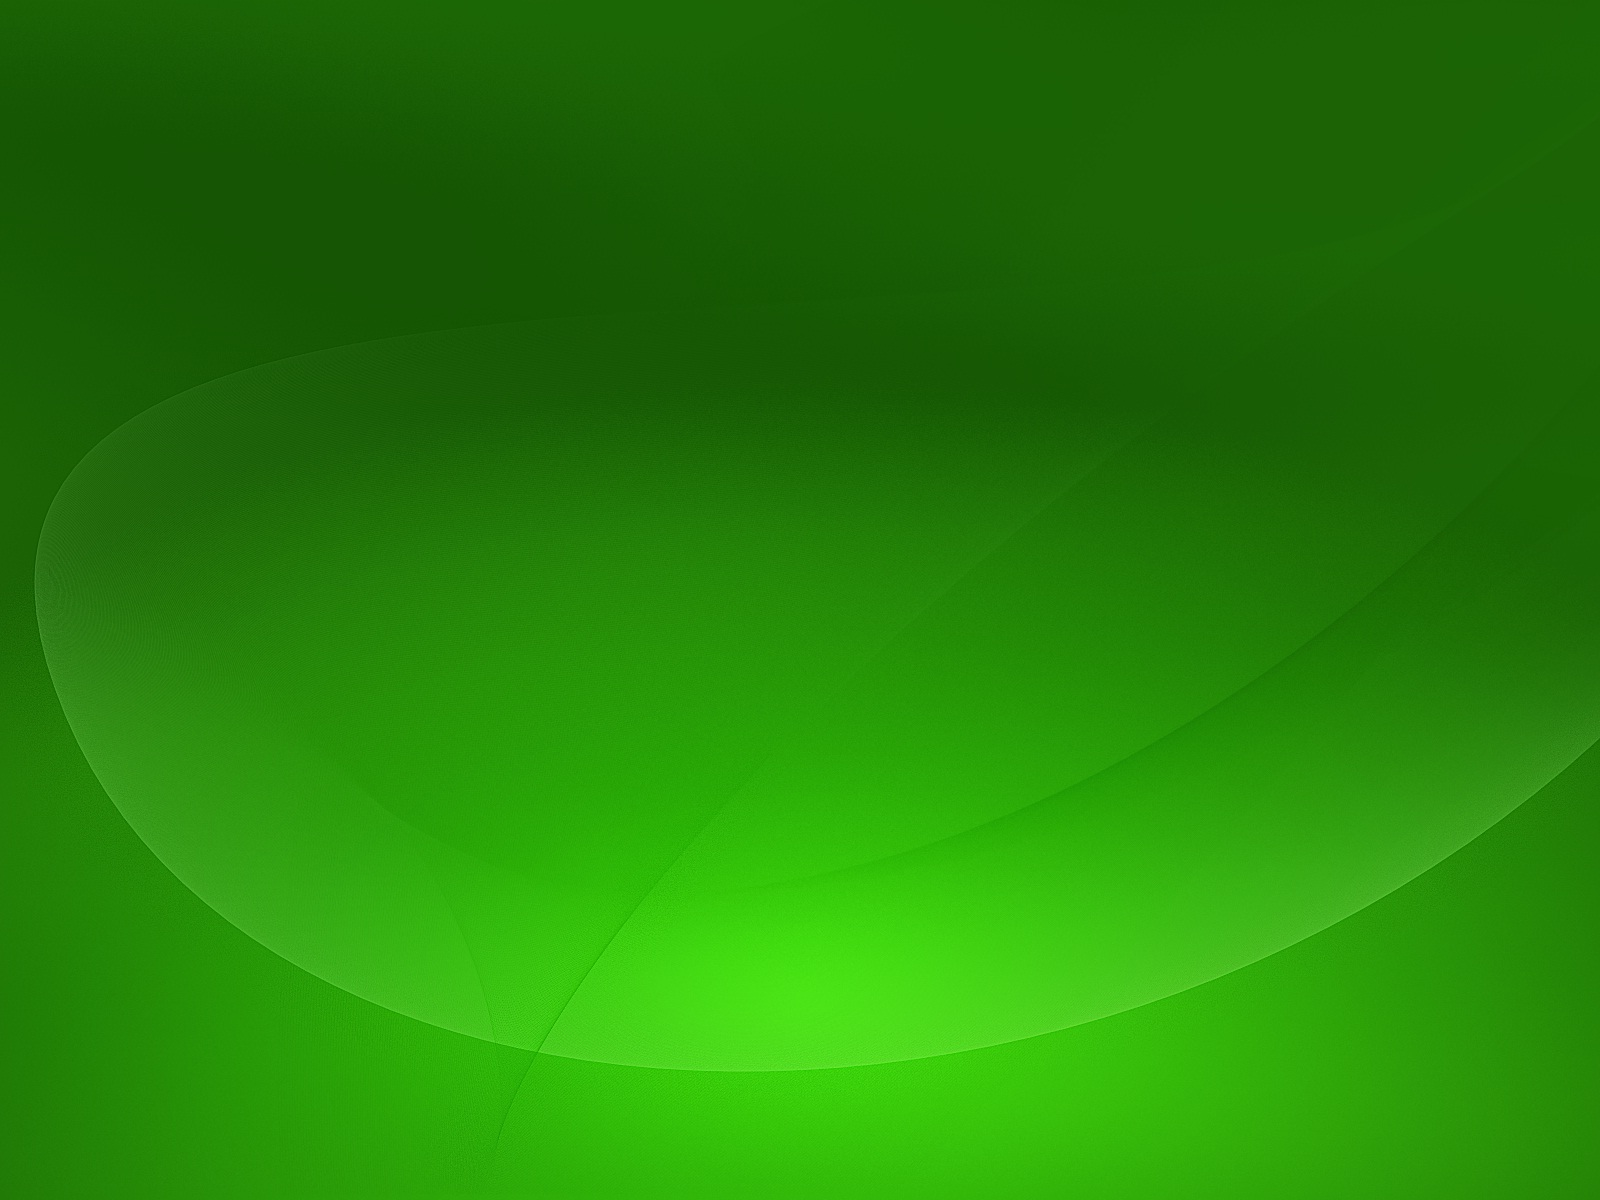 Green WOW Wallpapers HD Wallpapers 1600x1200